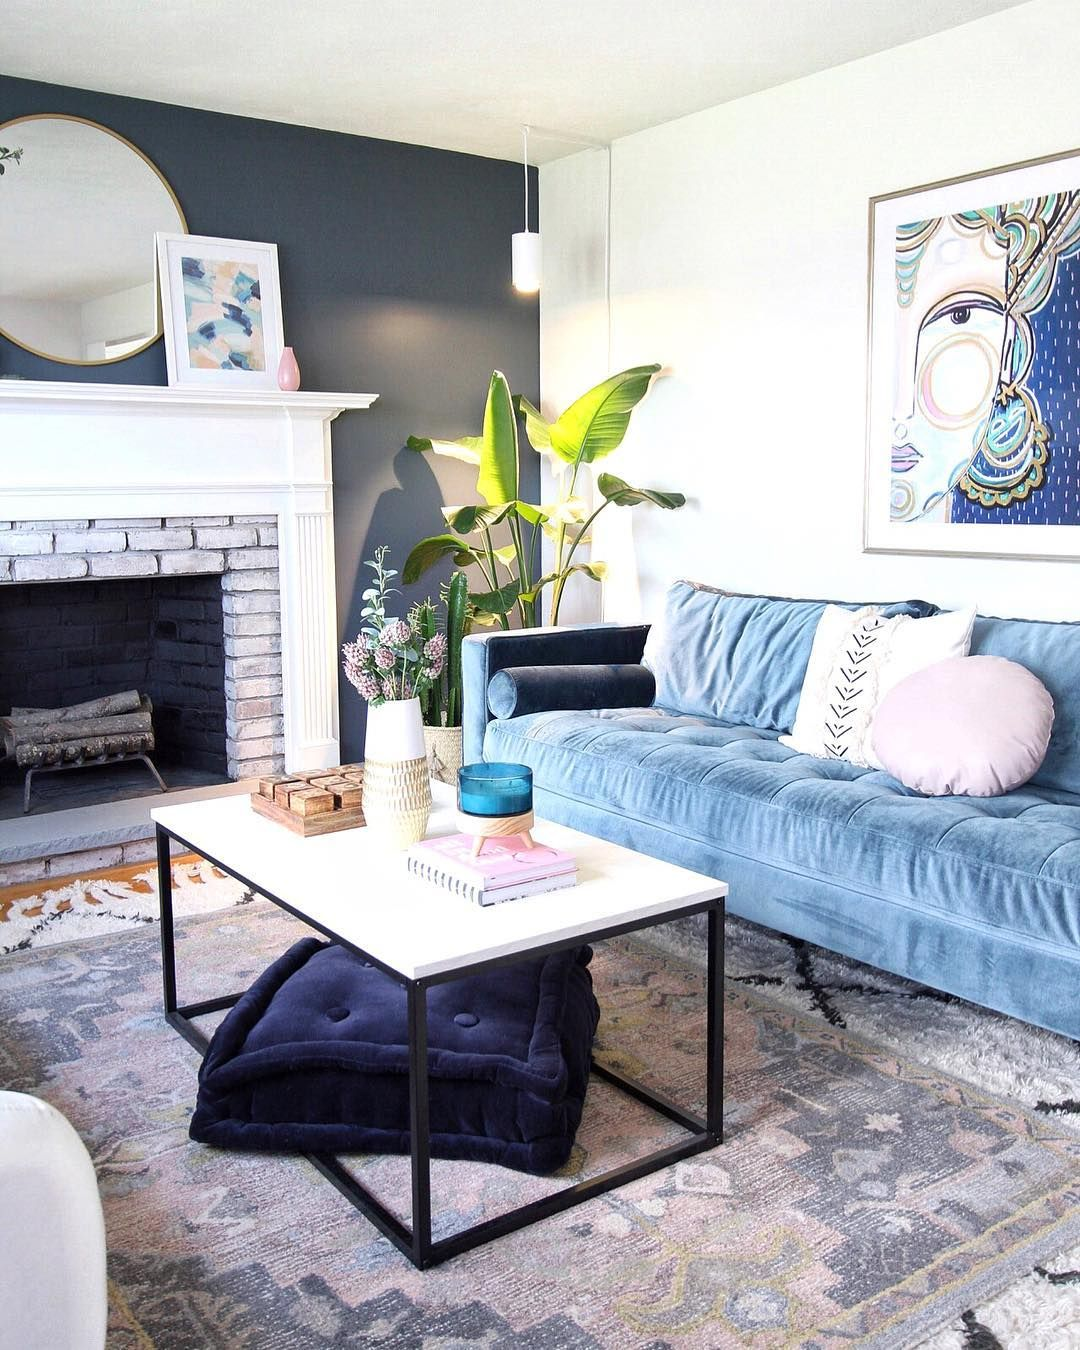 Pin by Johanna Miller on Living Room Dark and Whimsical ...